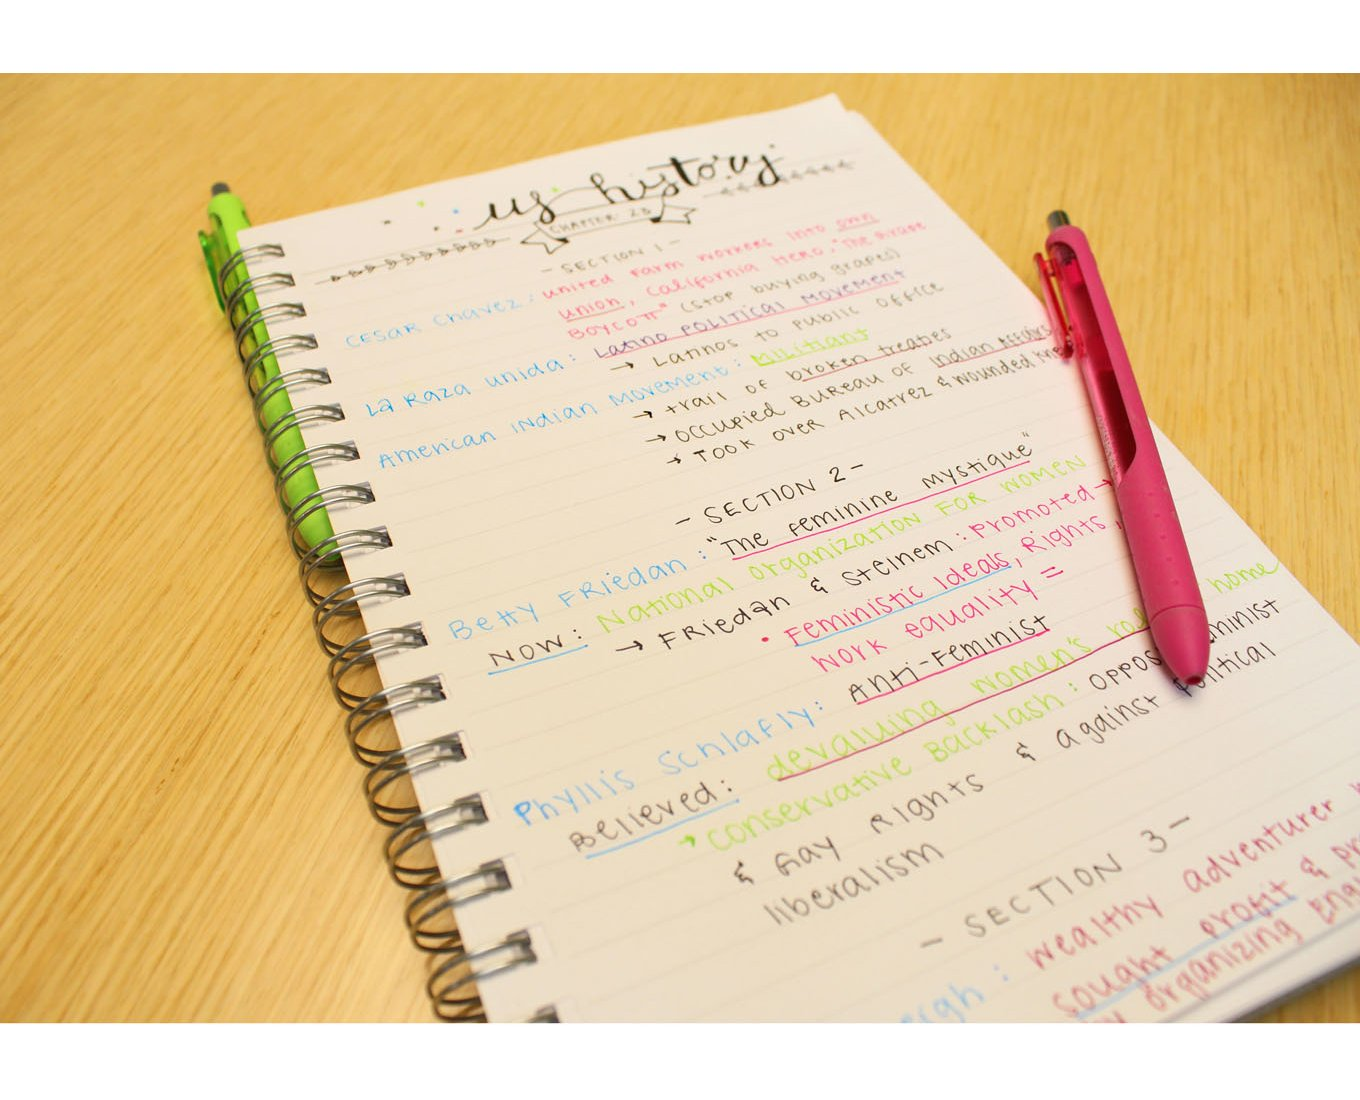 History Note Taking Tips and Tricks - Paper Mate